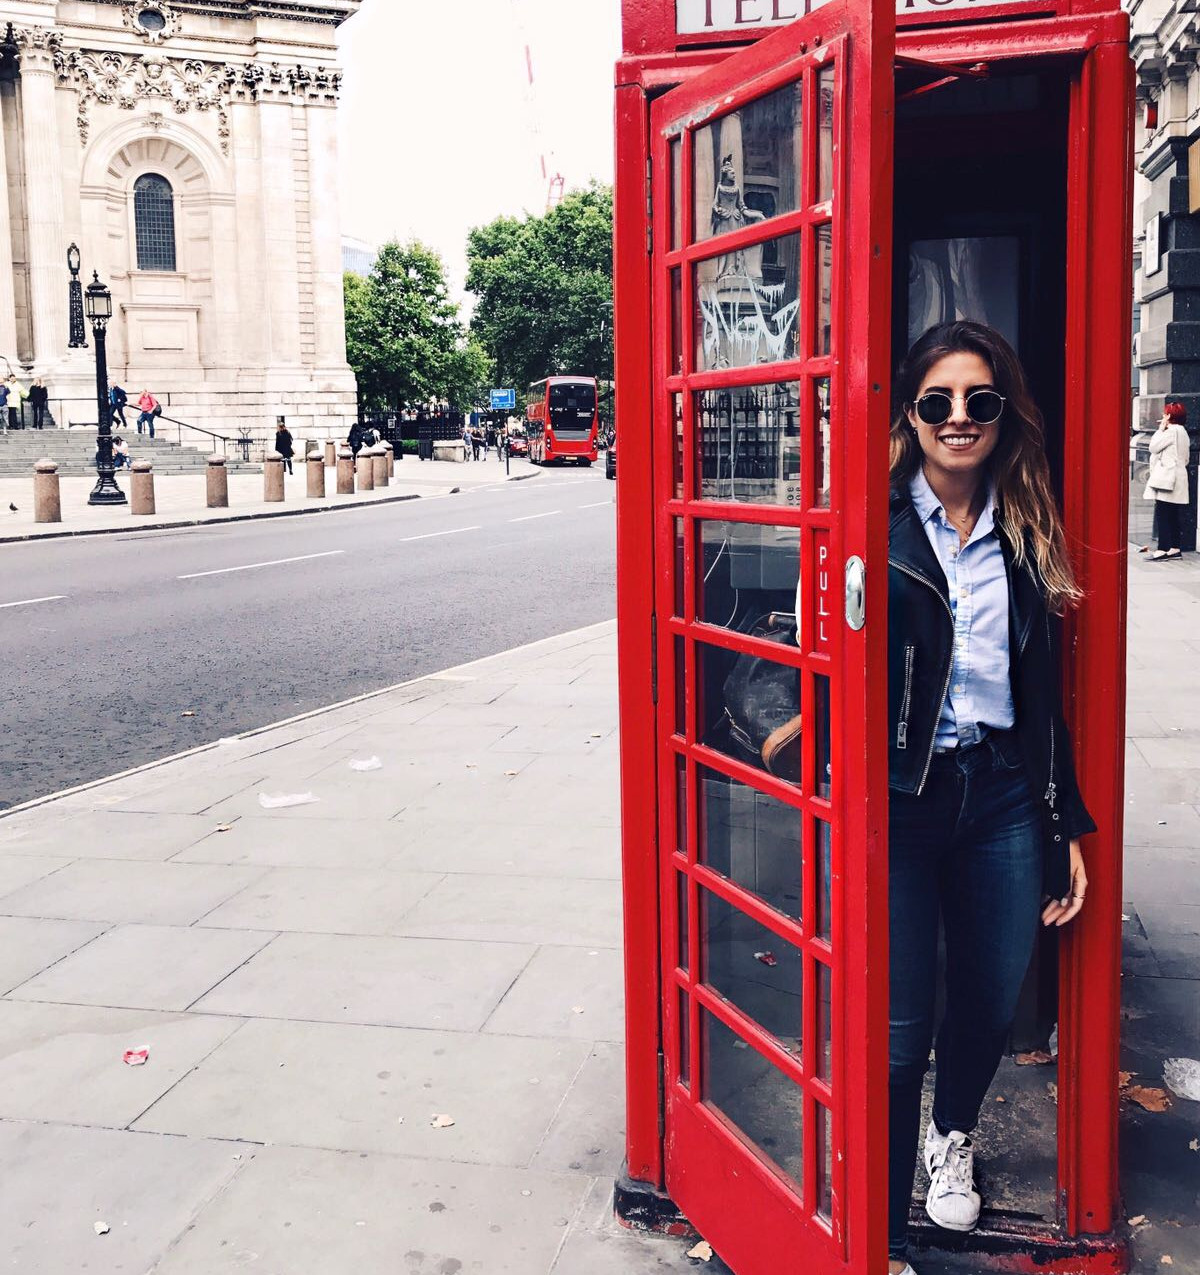 YU in London